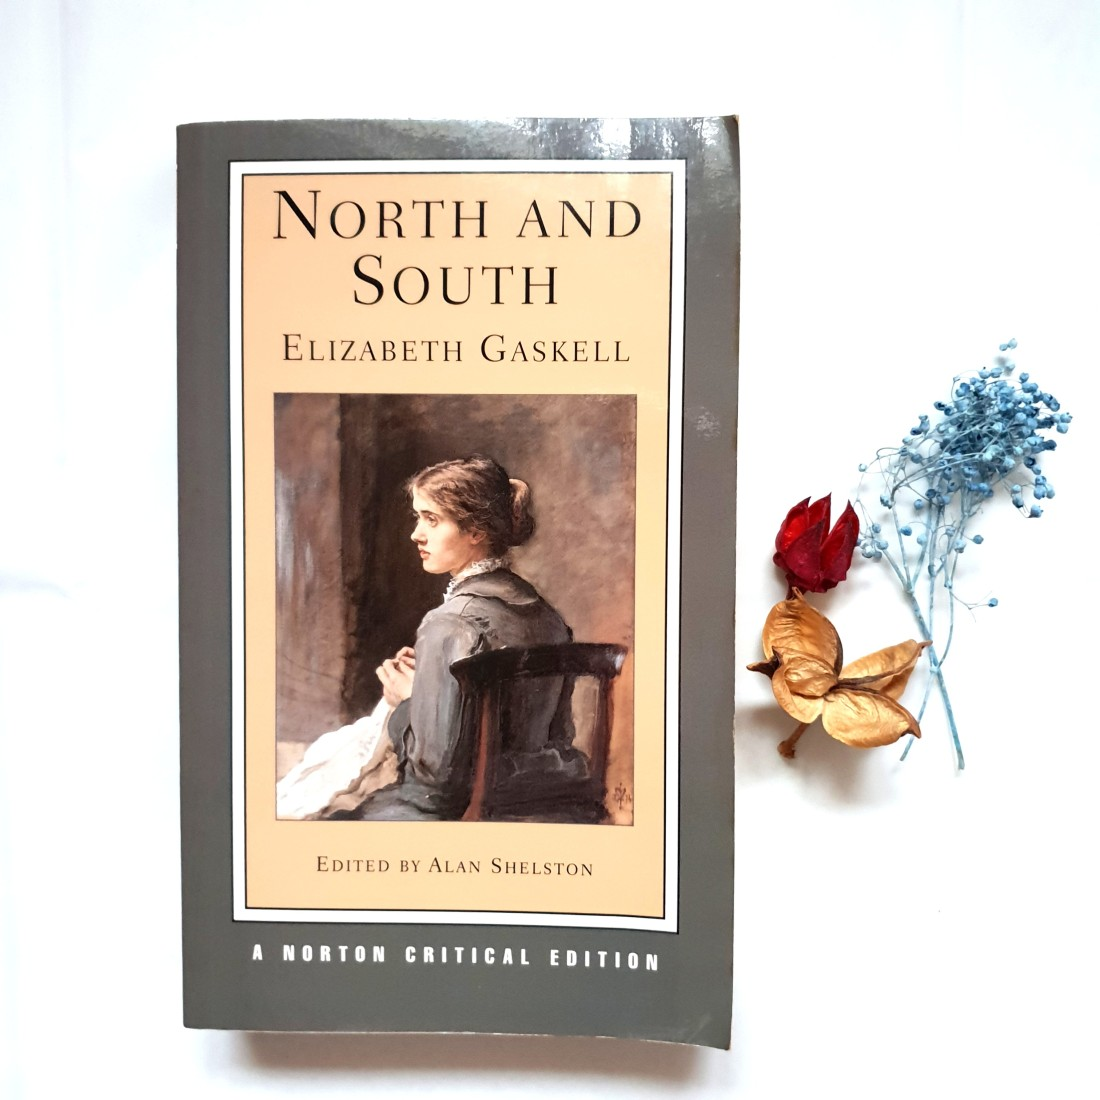 The image depicts a paperback copy of Gaskell's North and South. There are several dried flowers placed in an aesthetically pleasing fashion on the right side of the book